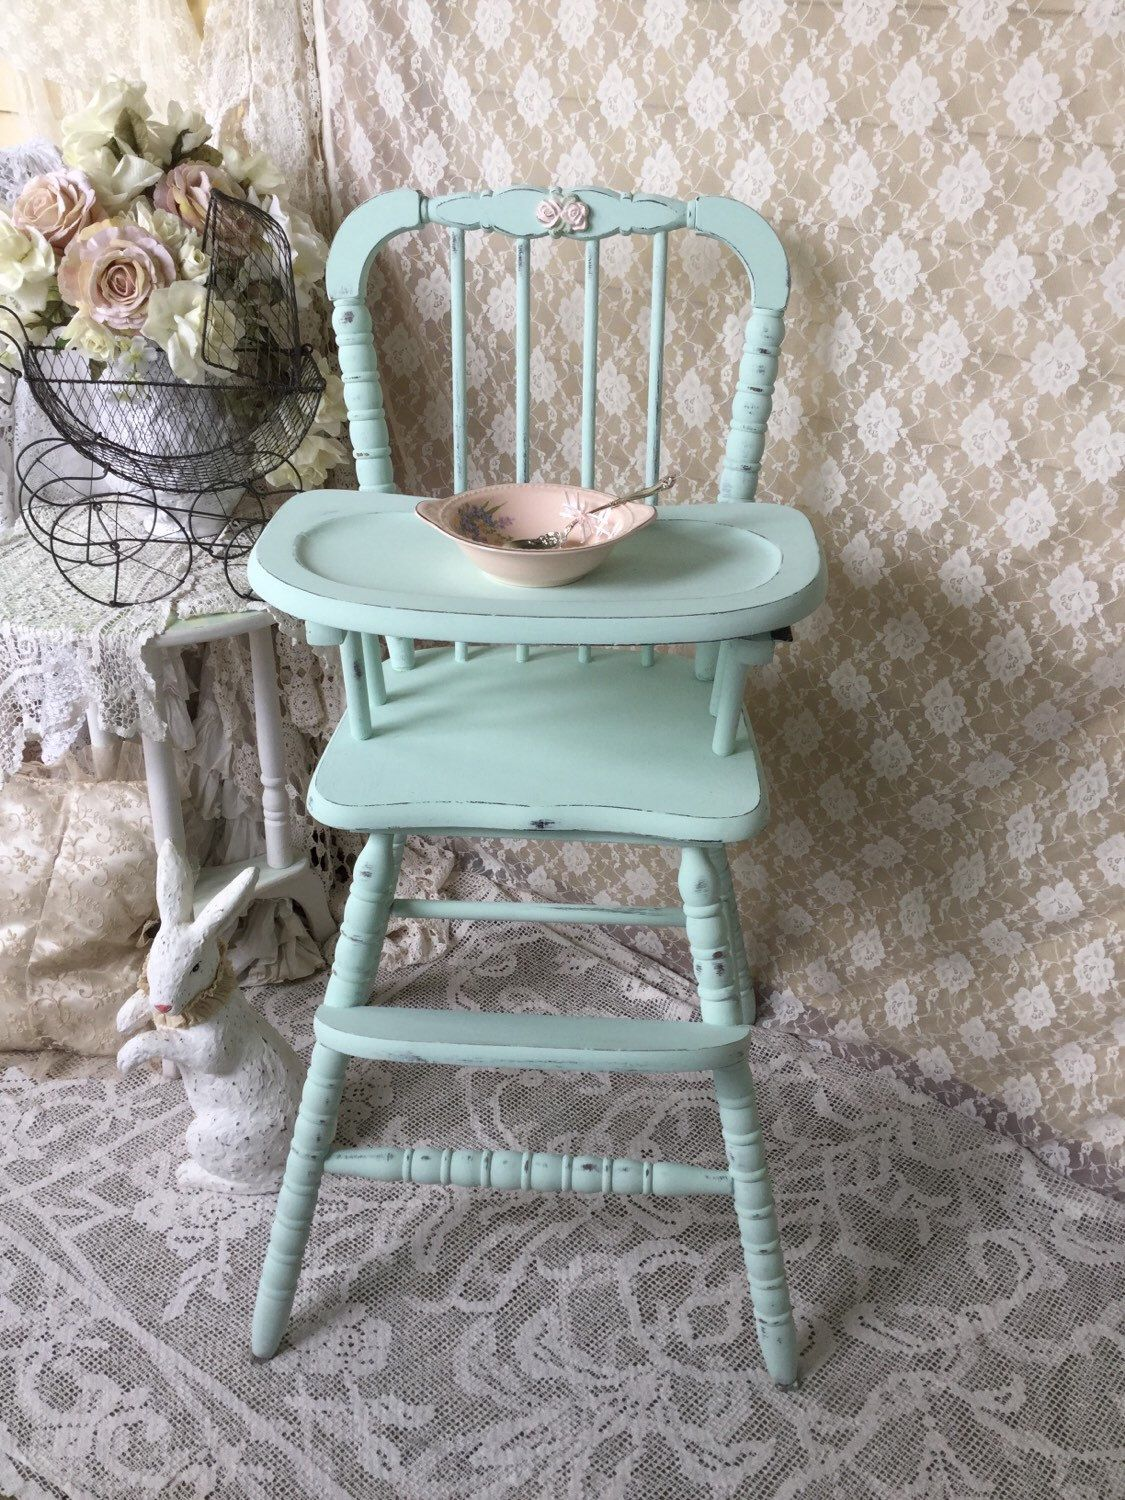 Antique high chair bentwood - Shabby Mint Green Vintage High Chair Jenny Lind Baby Chair Painted High Chair Shabby Cottage Baby Seat French Farmhouse Shabby Chic